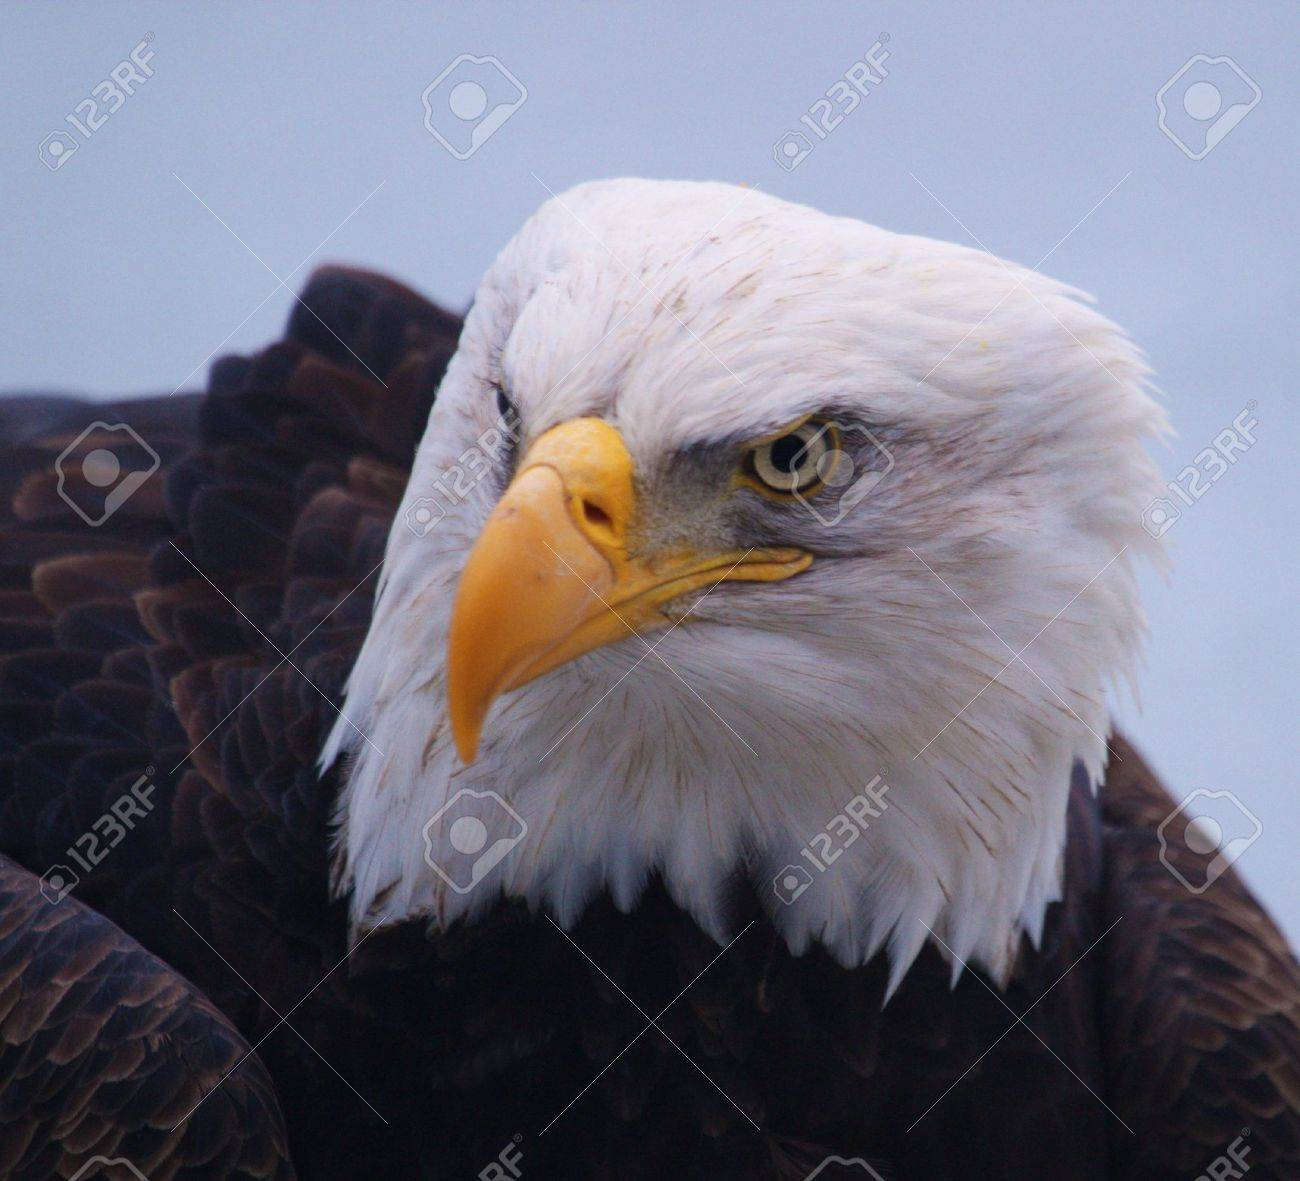 Eagle Without Beak Beaks Bald Eagle in a